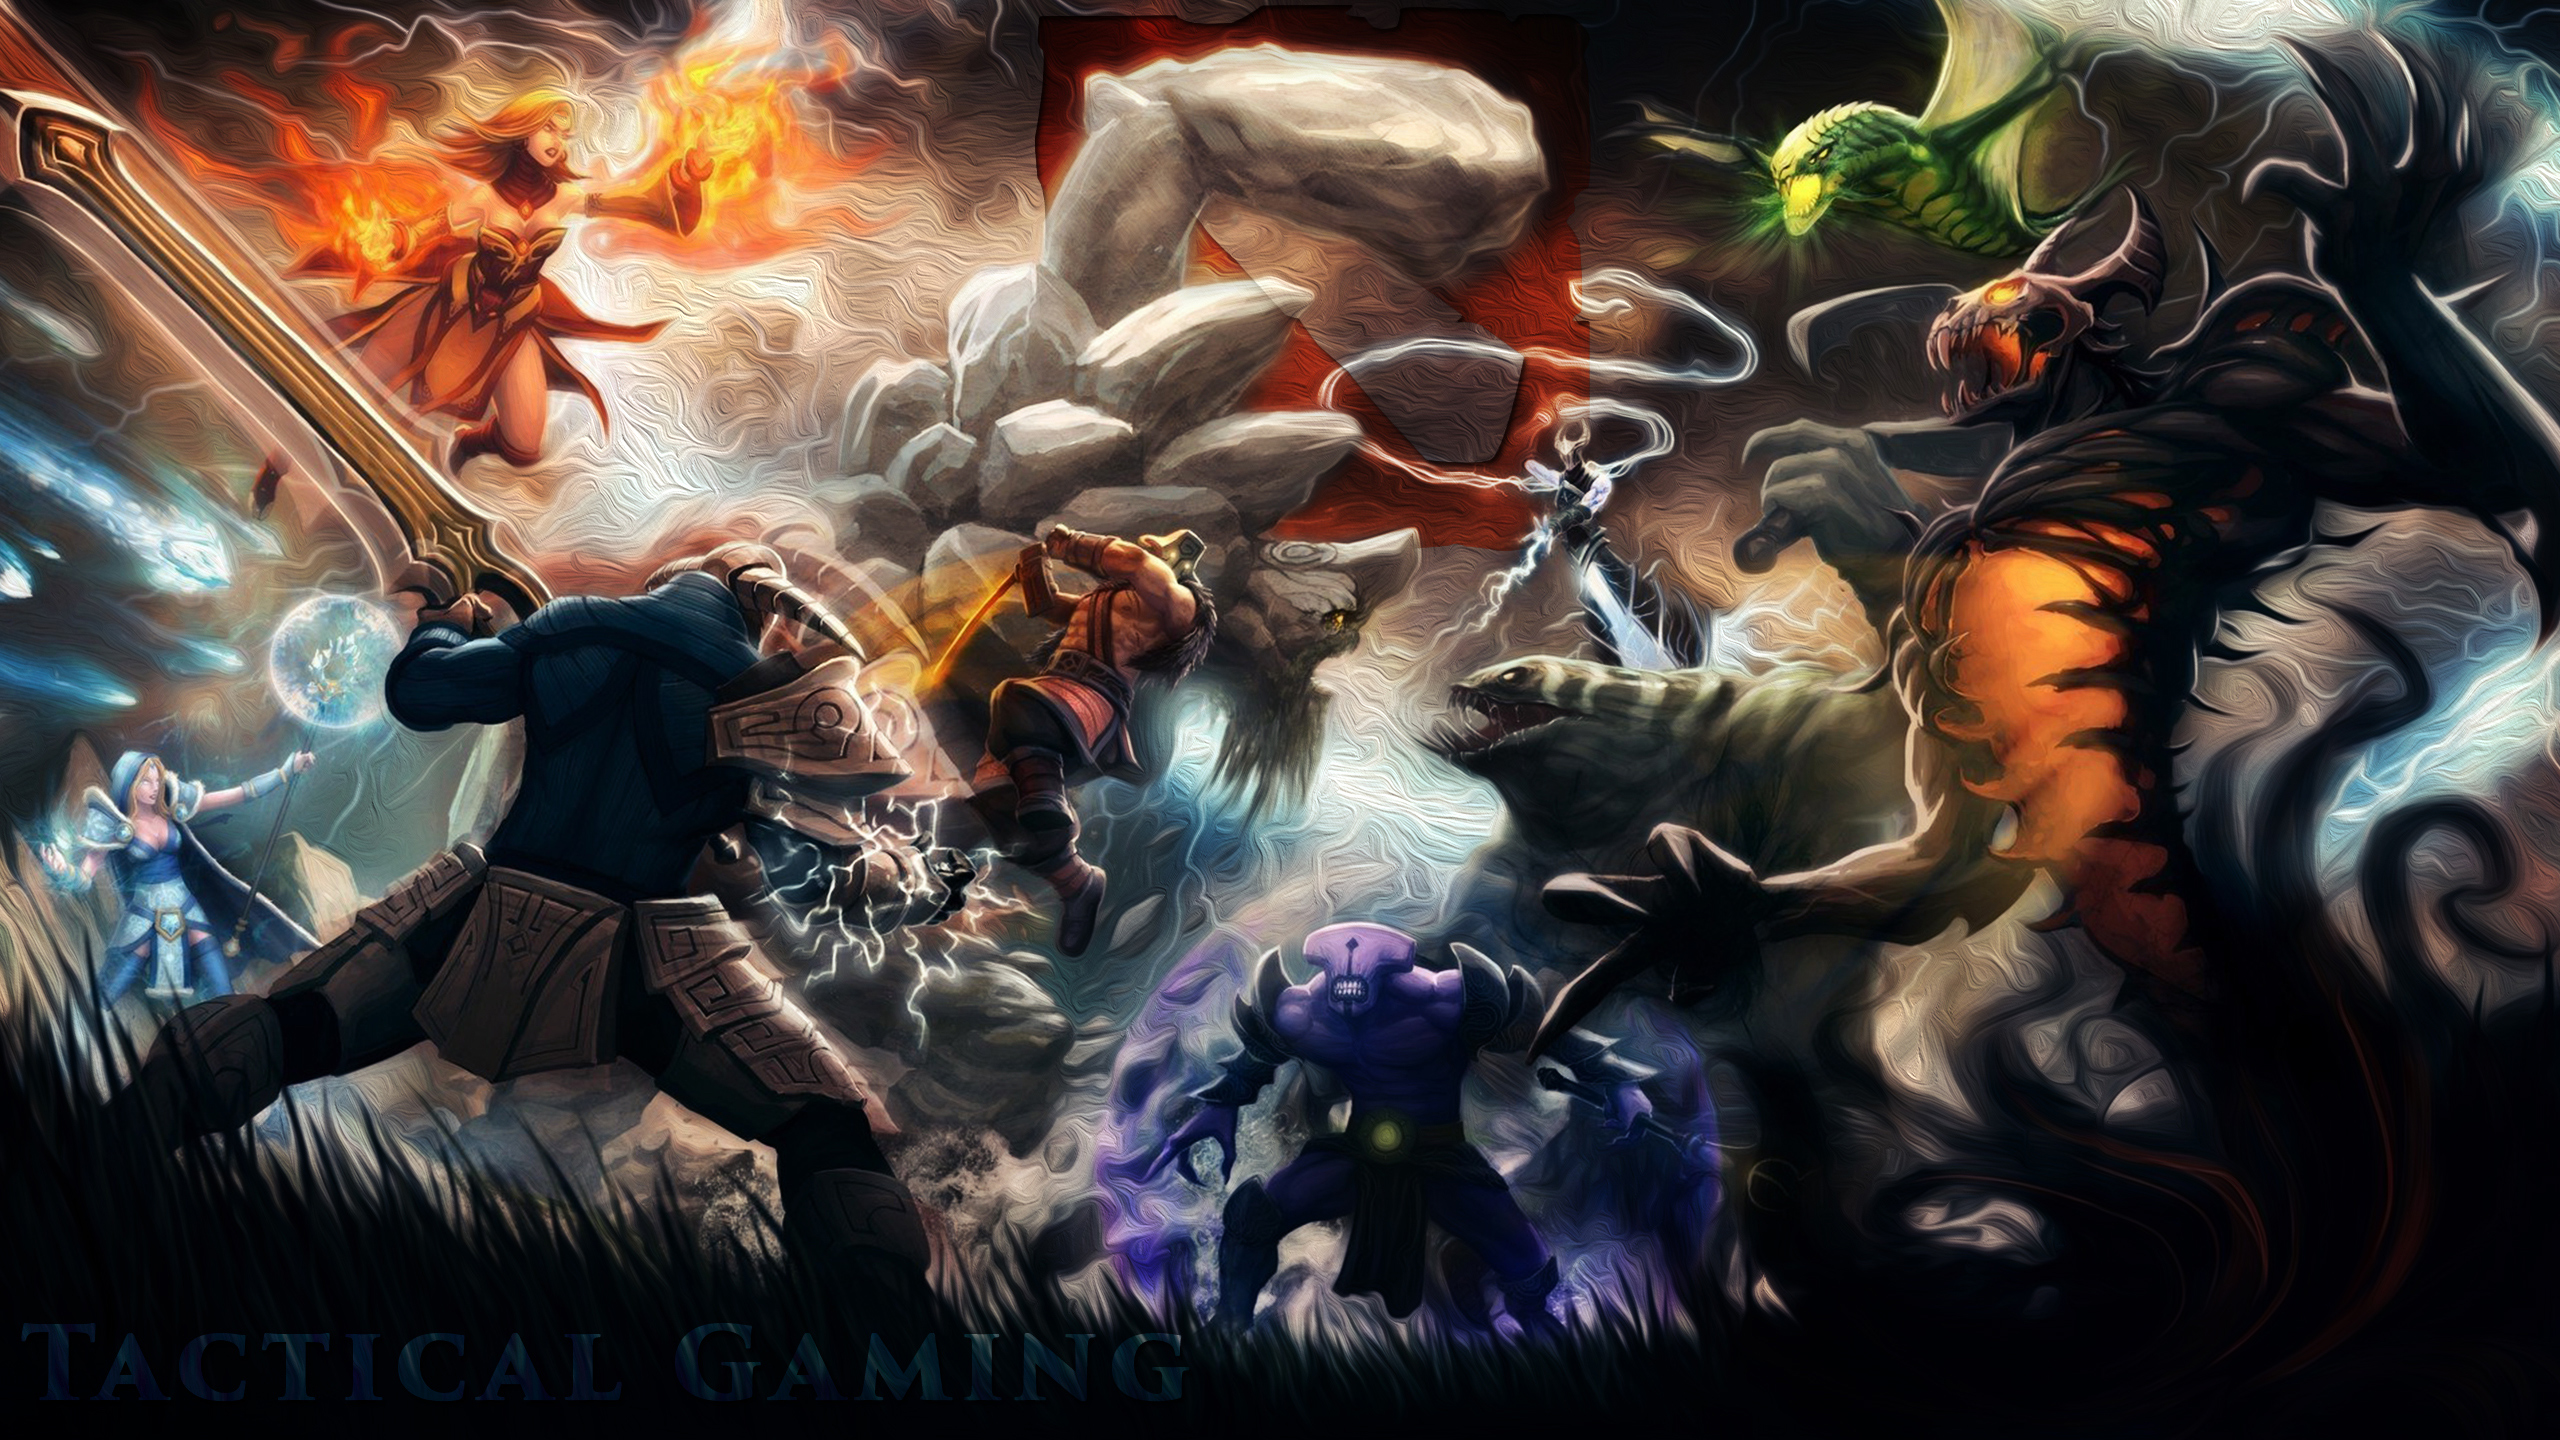 Free Dota2 Wallpaper PC Wallpapers Gallery Tactical